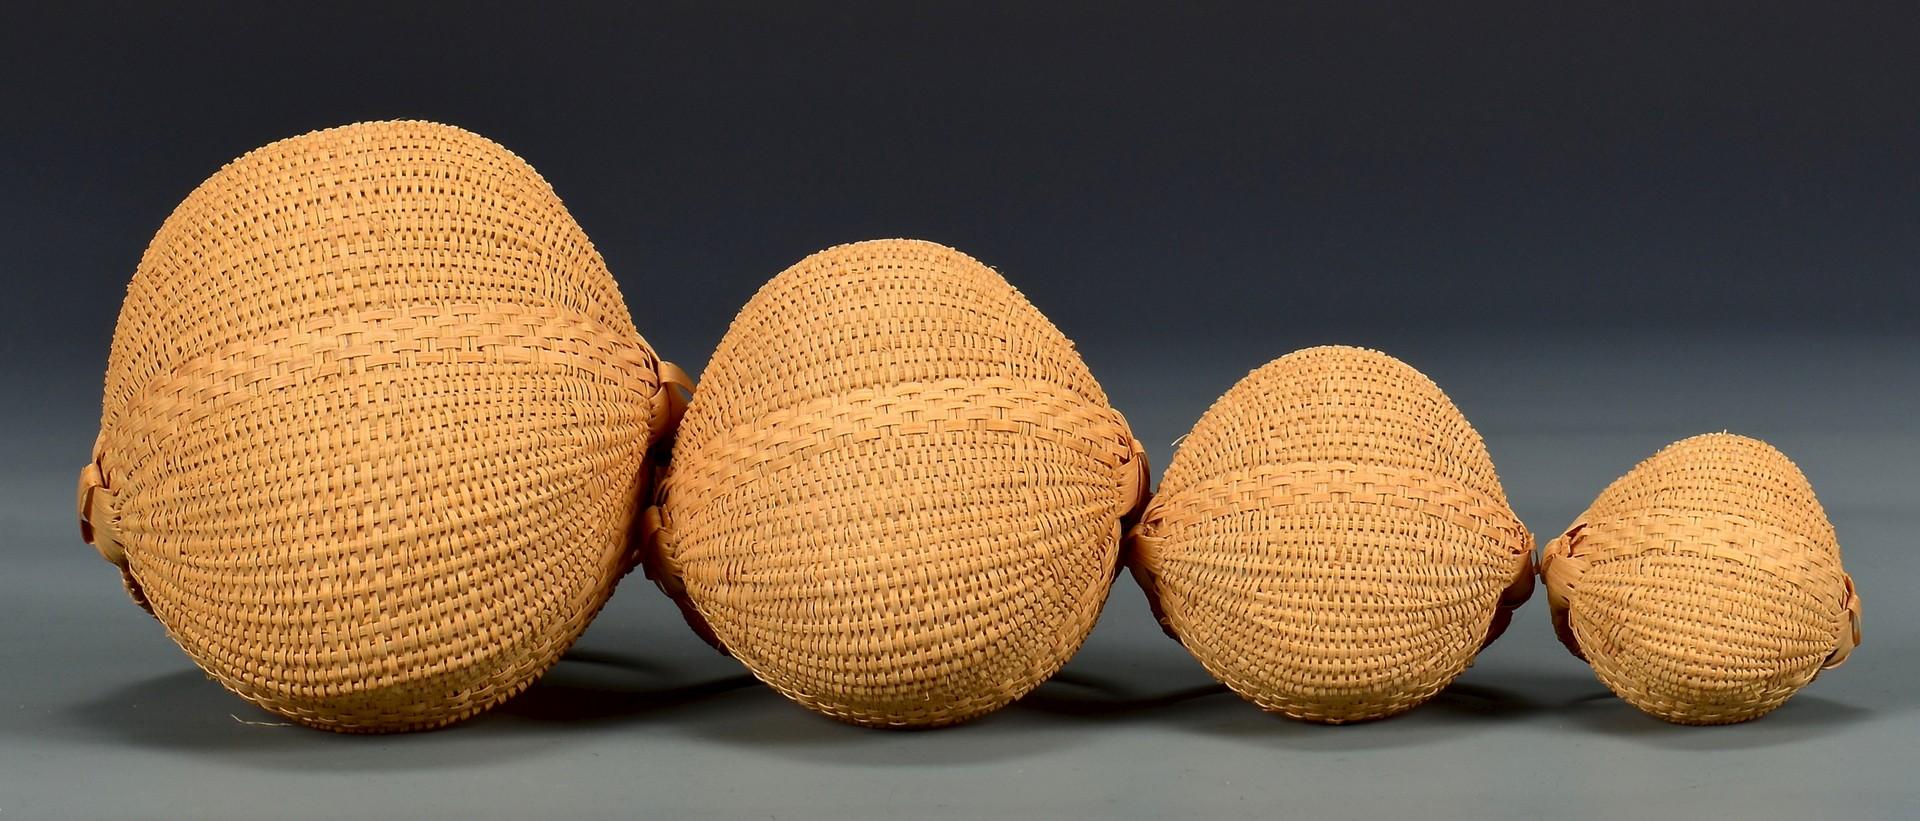 Lot 289: 6 Mary Prater Buttocks Baskets